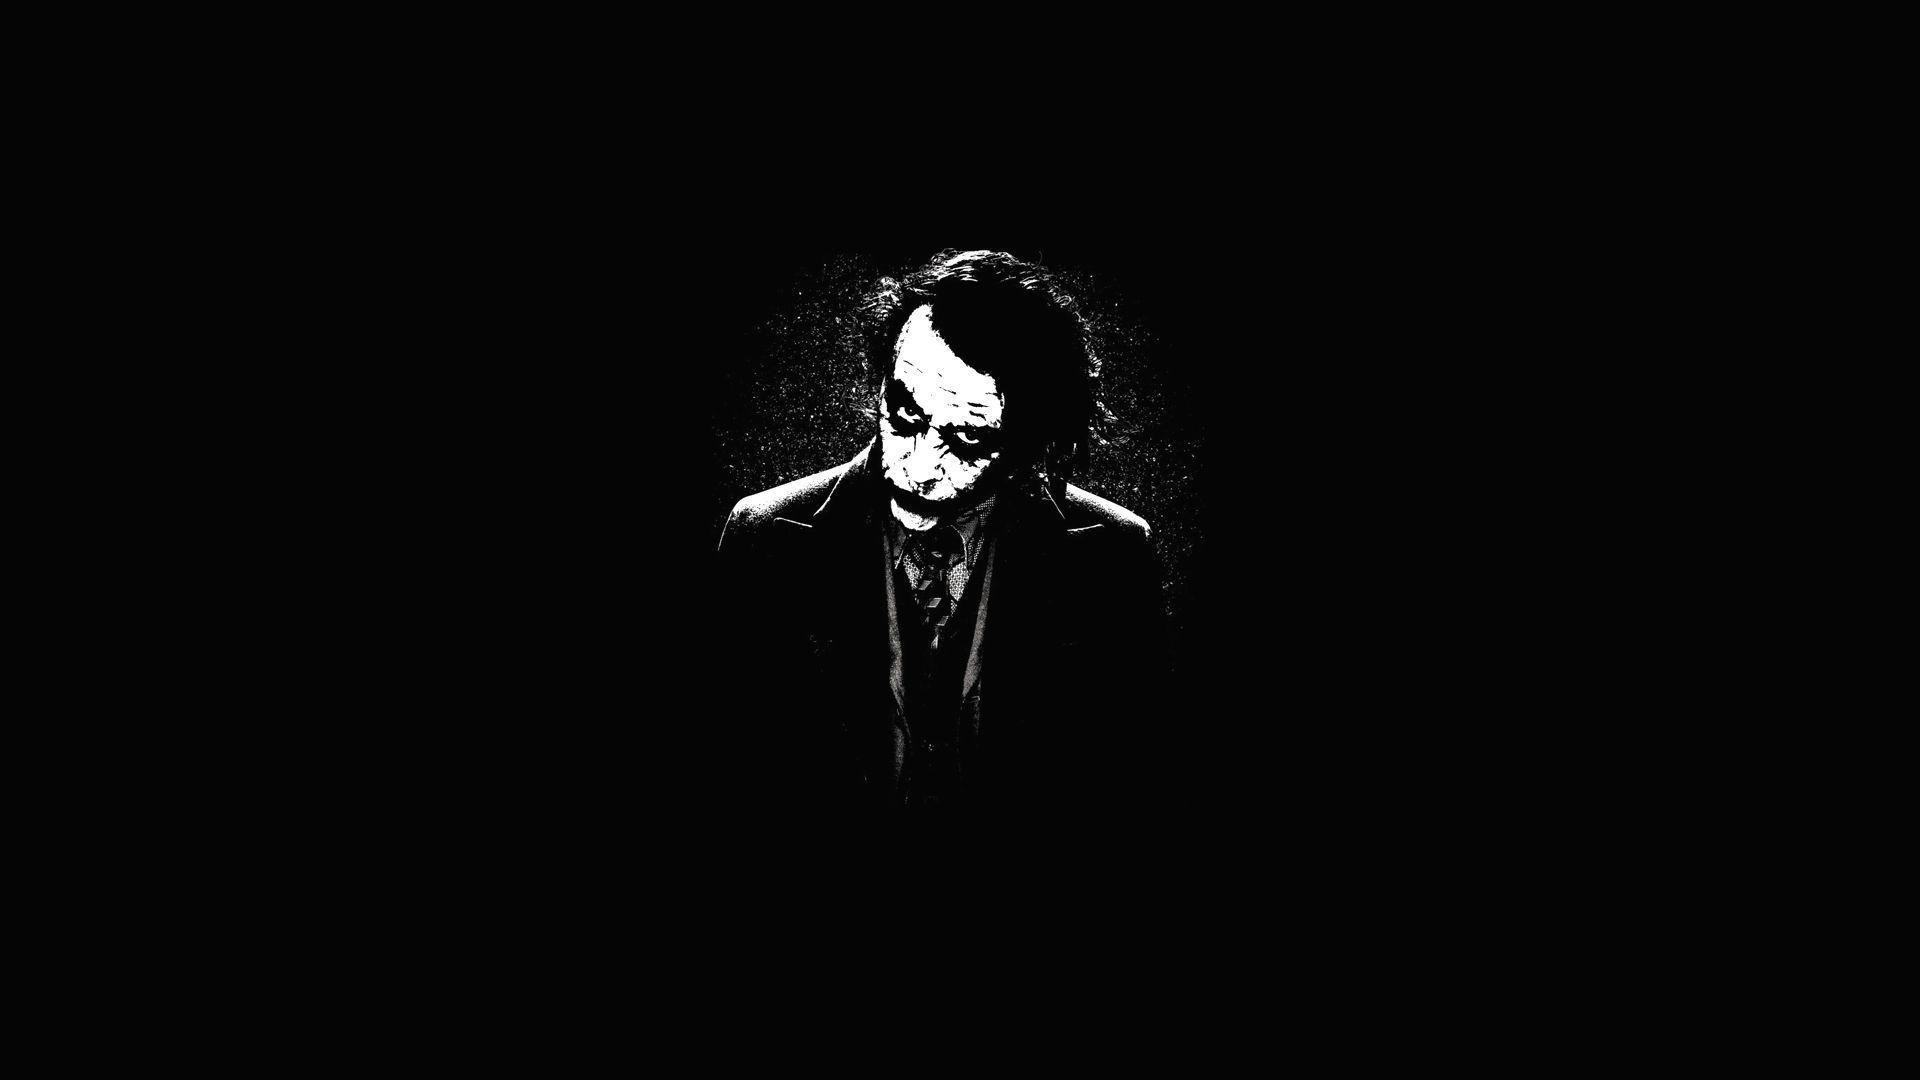 Pubg Wallpapers Black: Joker HD Wallpapers